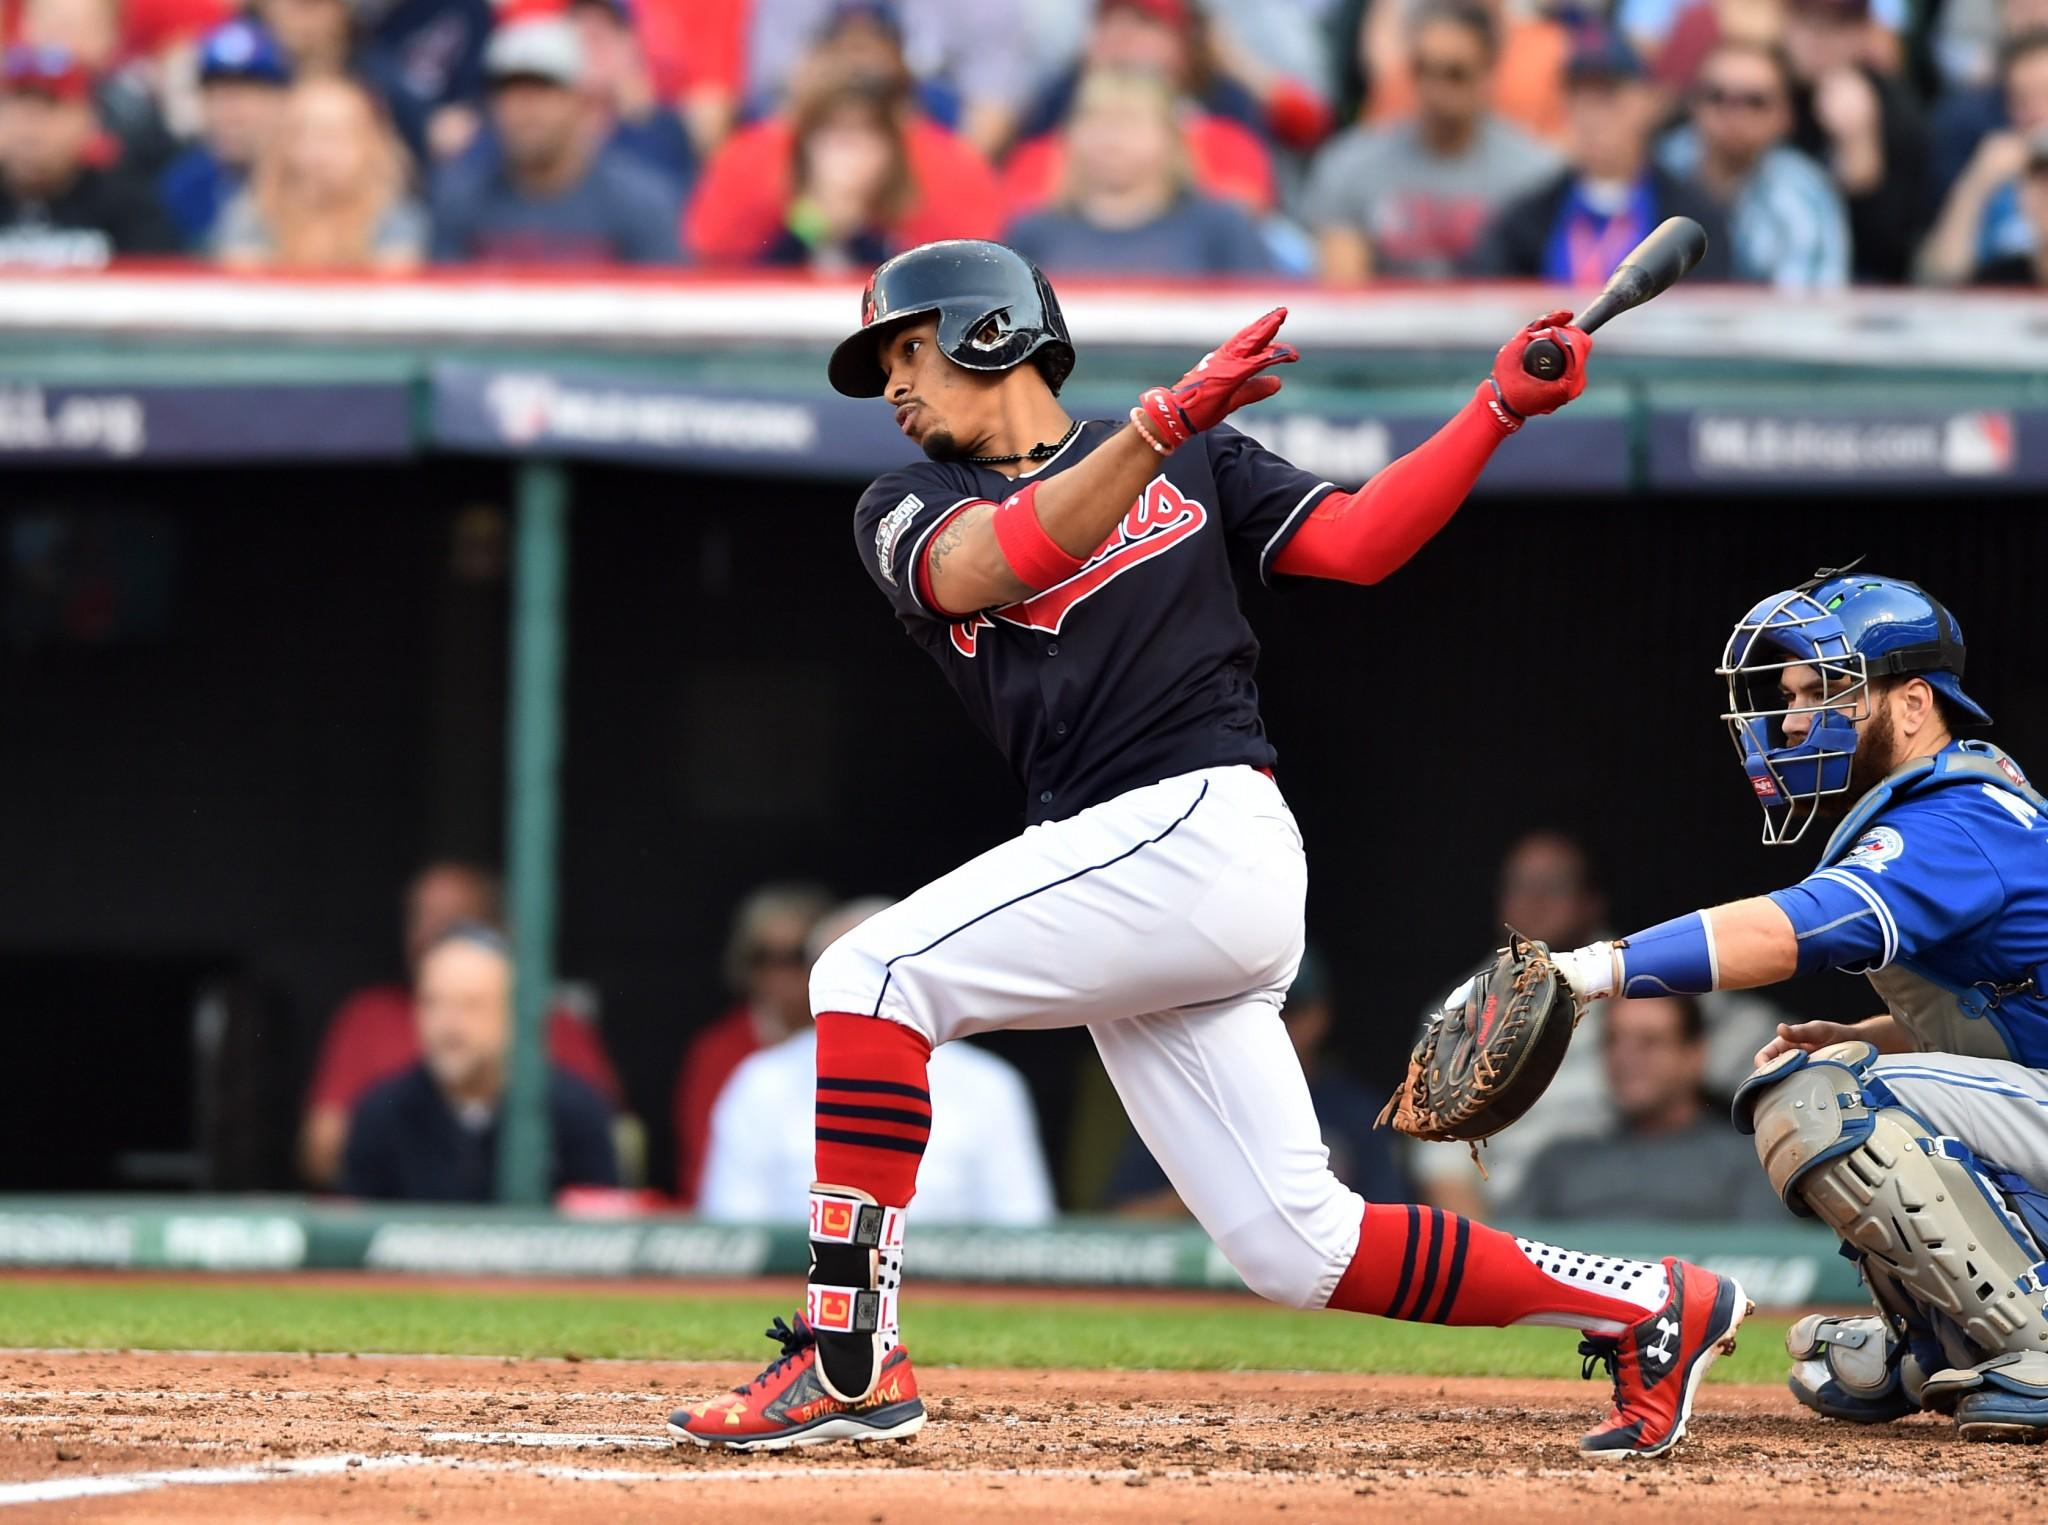 ALCS Game 2: The lucky penny that's sparked the Indians ...